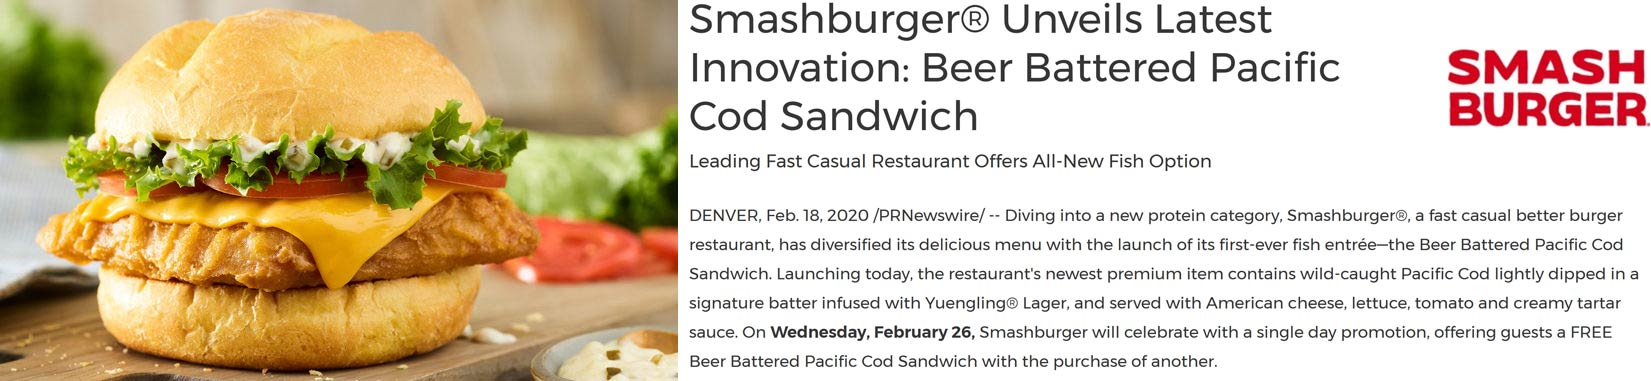 Smashburger coupons & promo code for [April 2020]